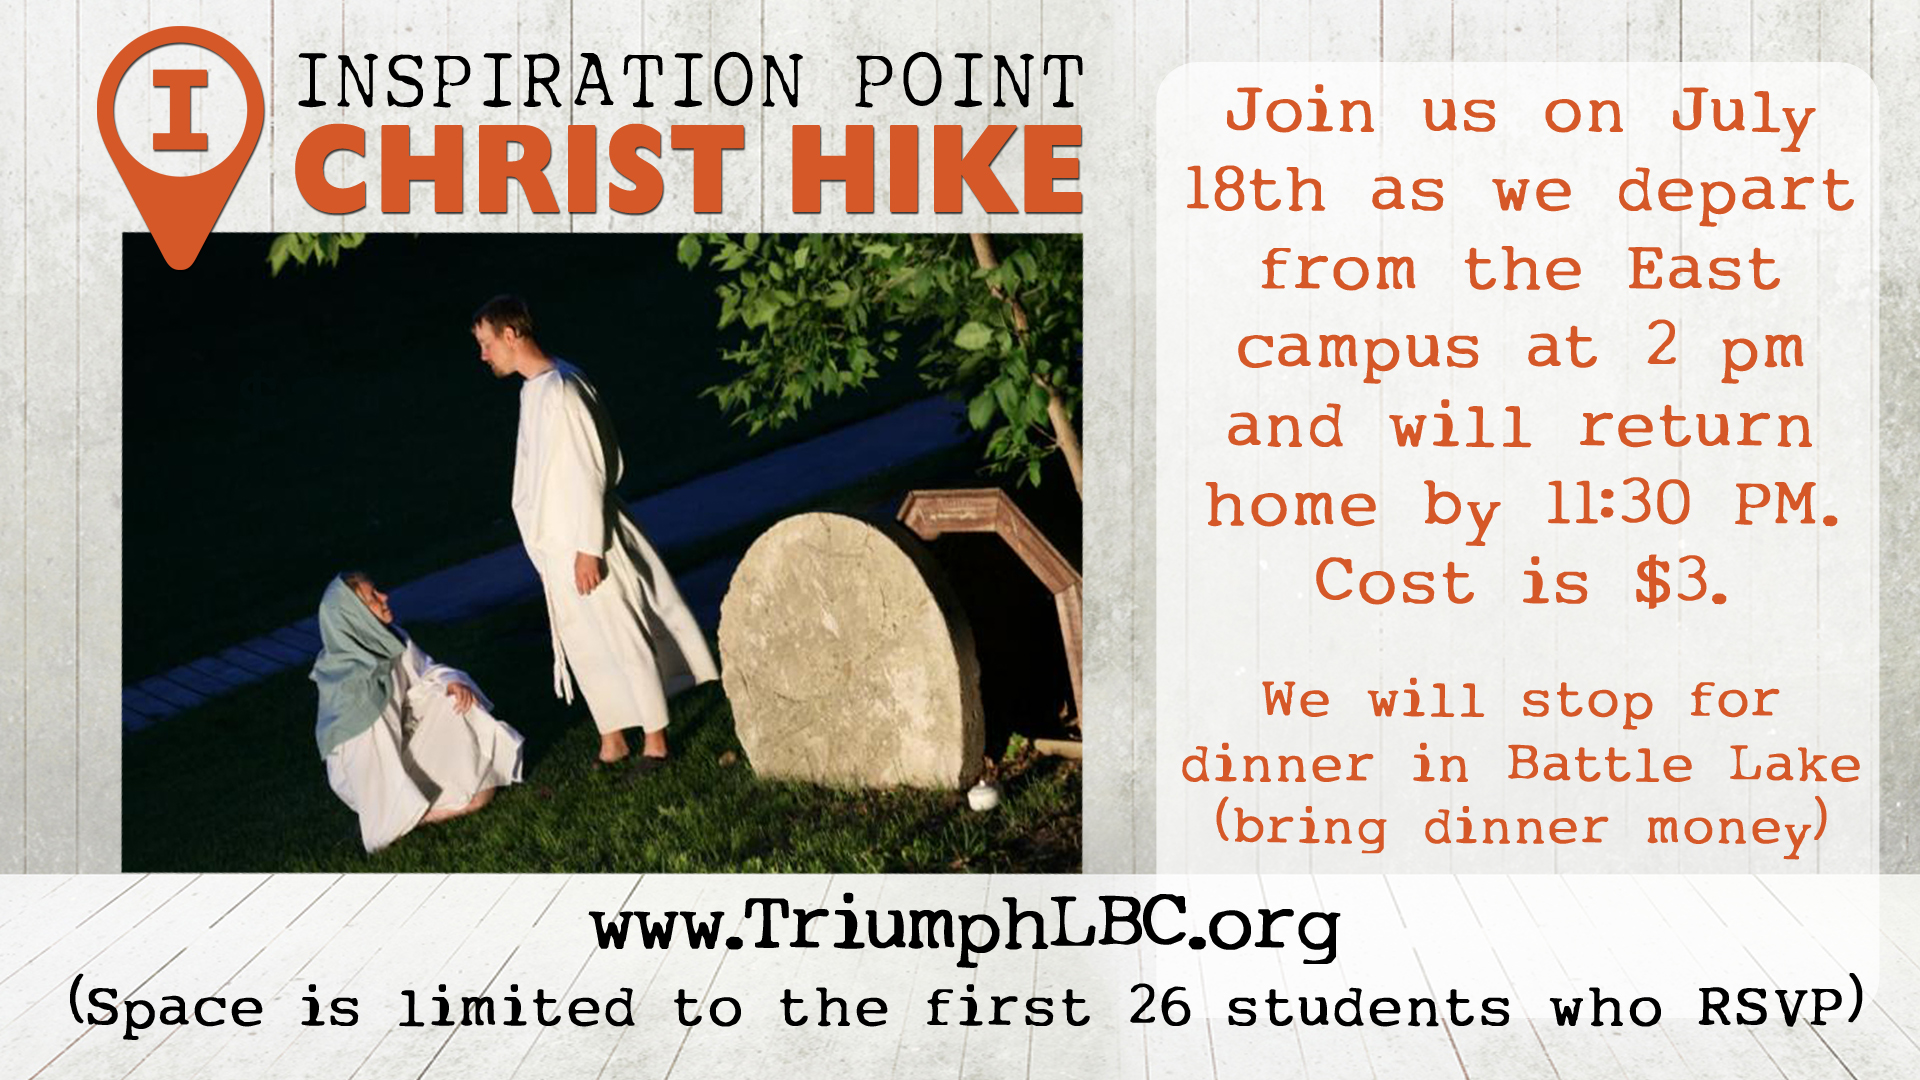 Christ hike 2017triumph